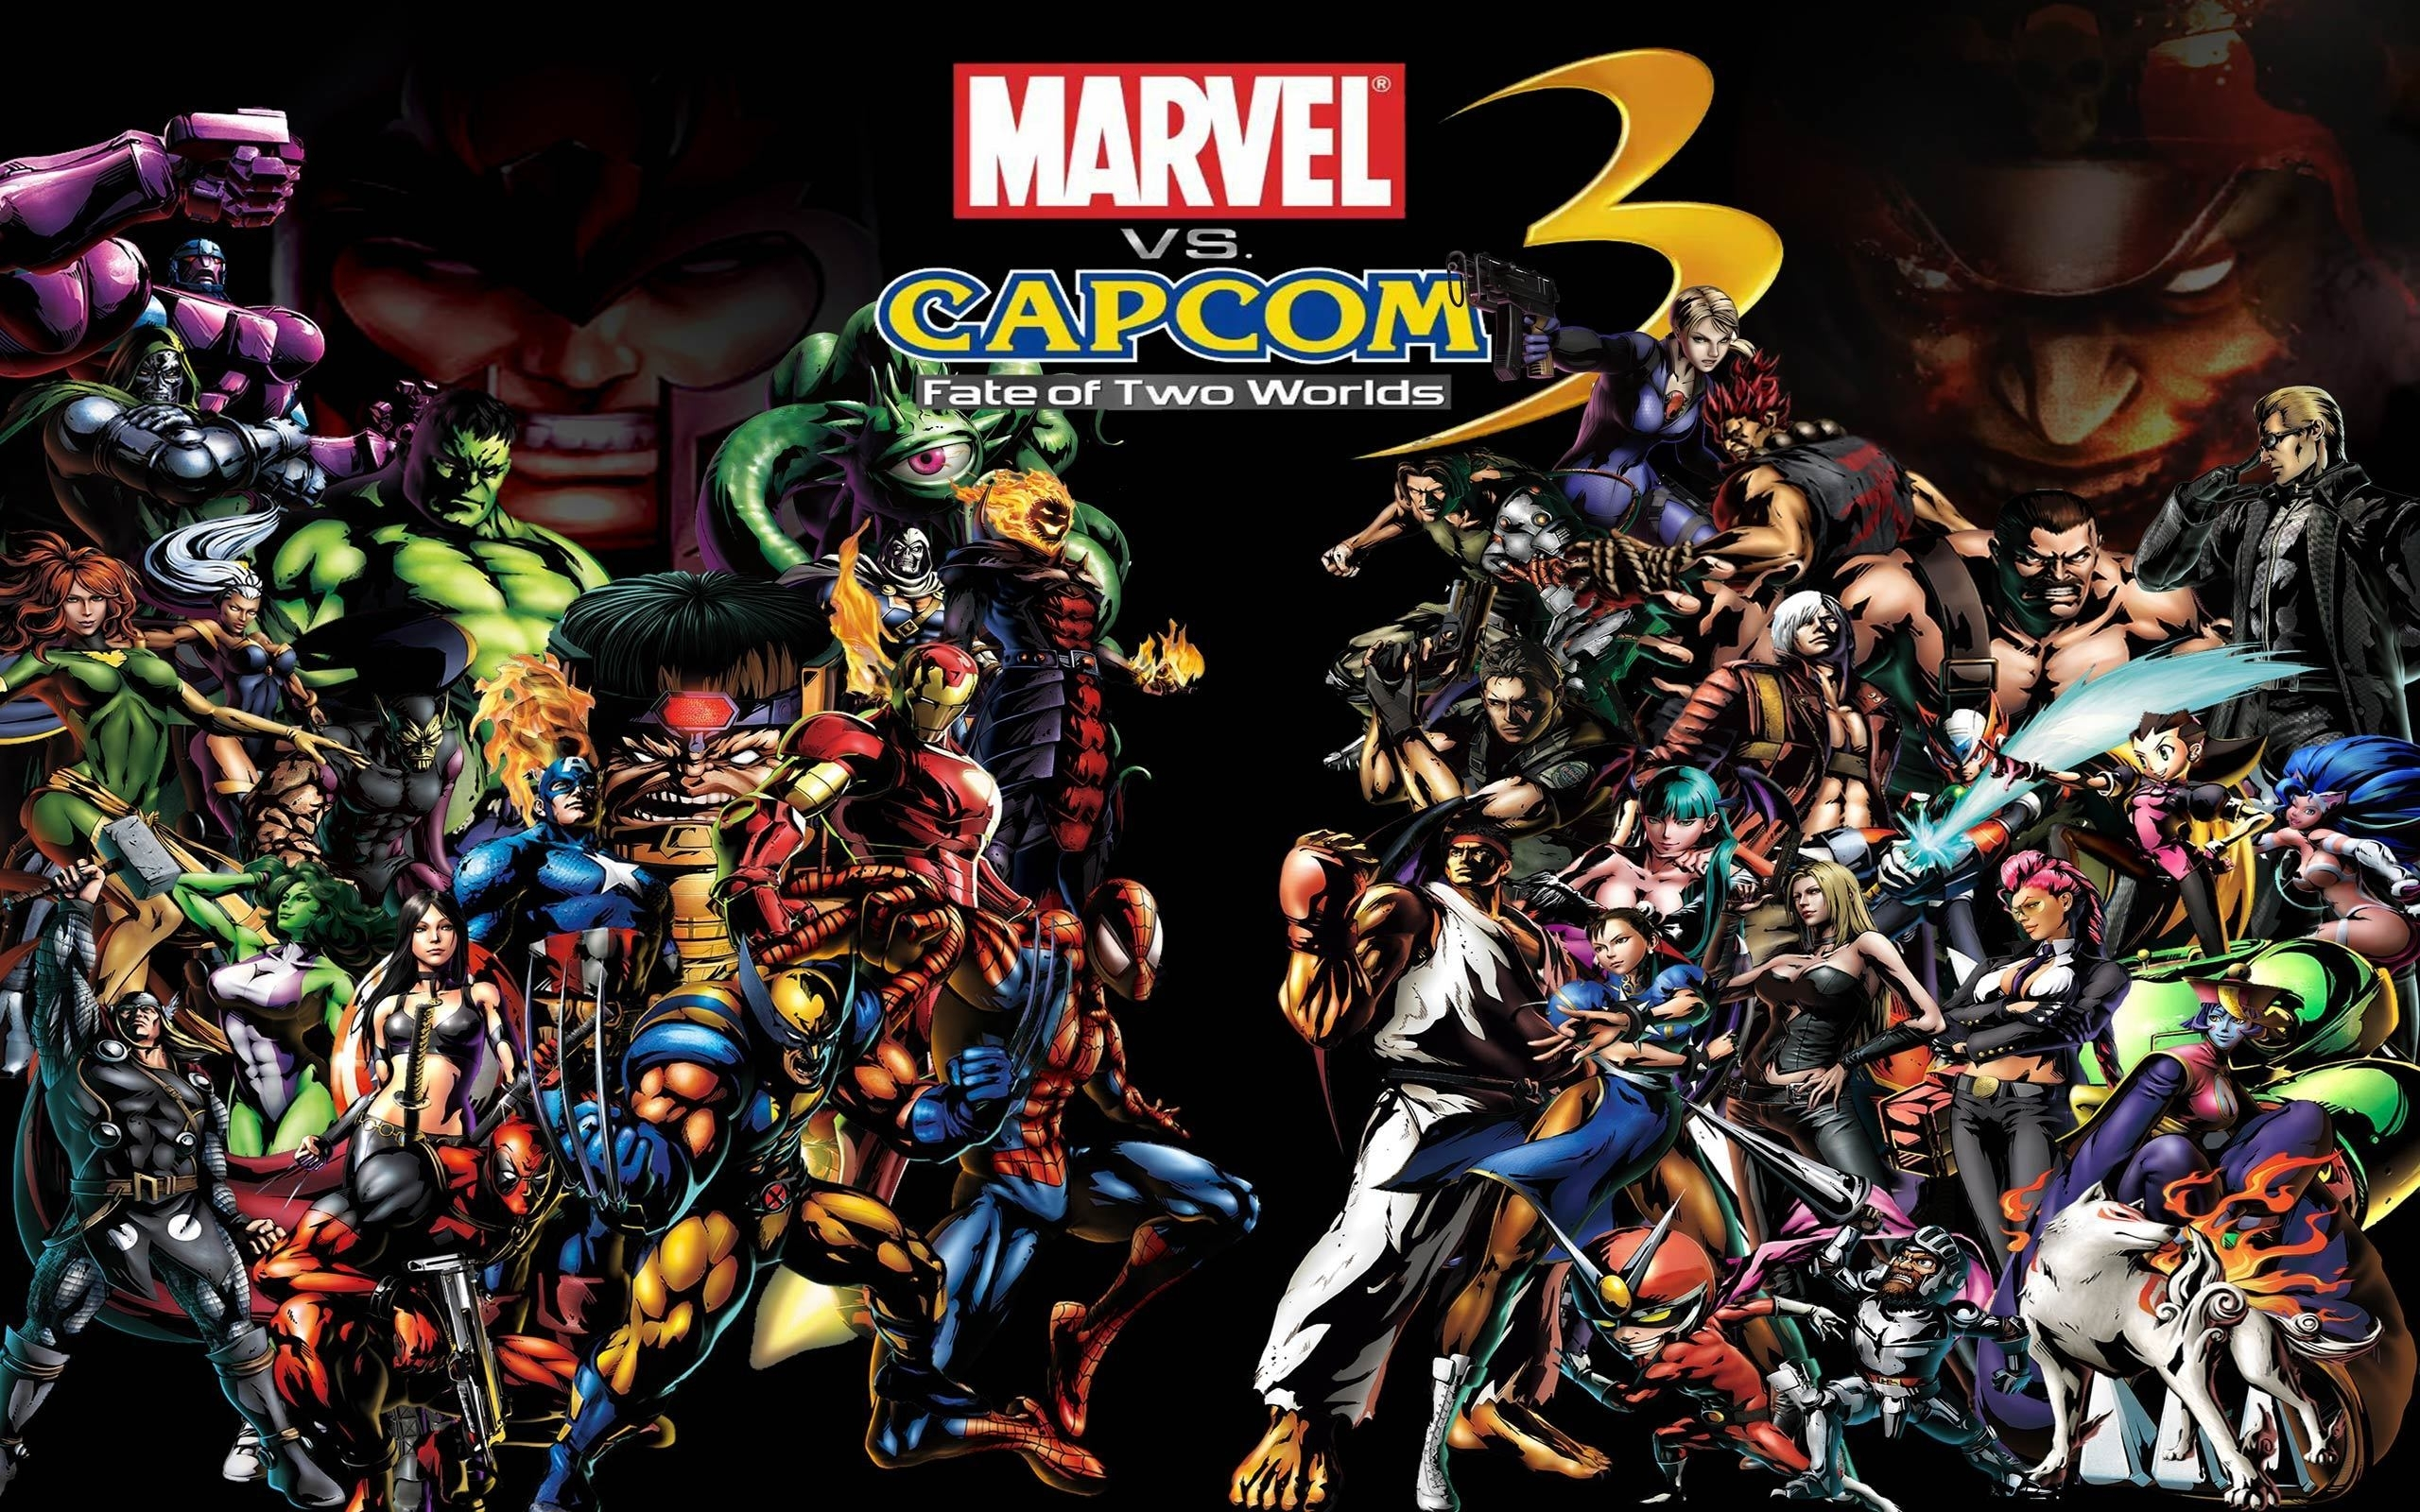 marvel vs capcom images marvel vs capcom 3 hd wallpaper and